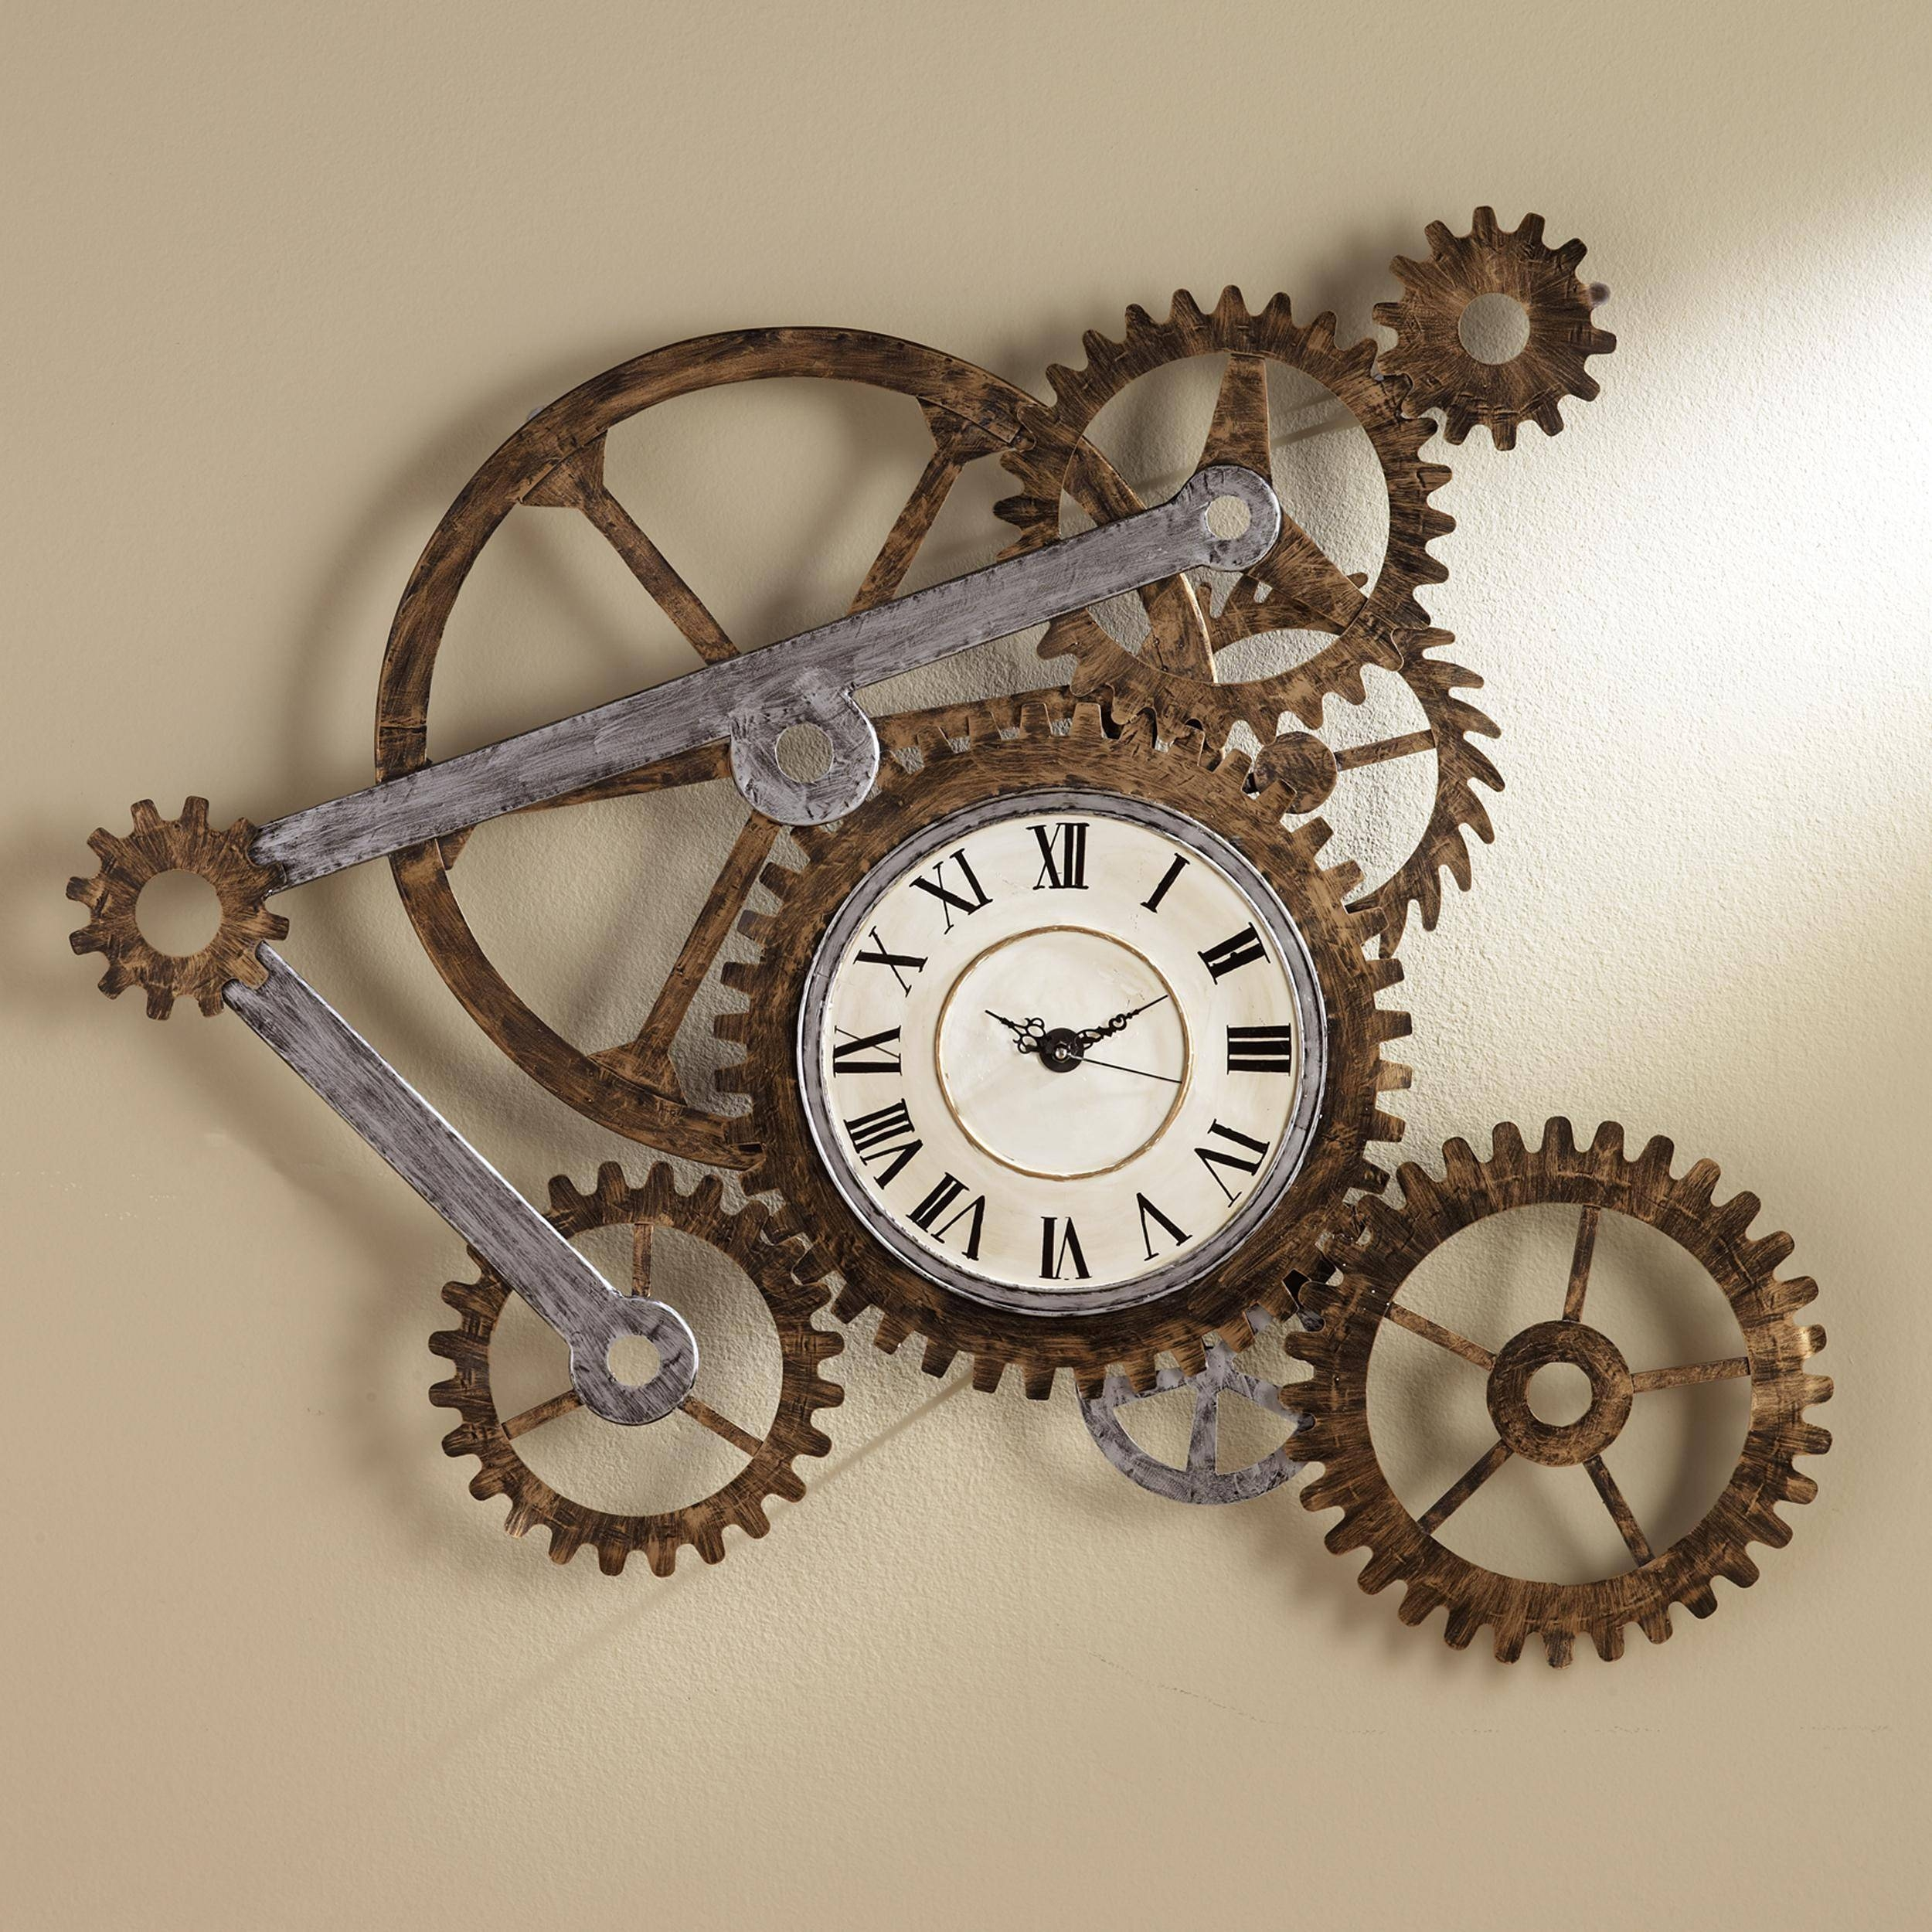 Clock: Good Gear Clock Ideas Clock With Working Gears, Wood Gear For Most Popular Bed Bath And Beyond 3d Wall Art (View 18 of 20)